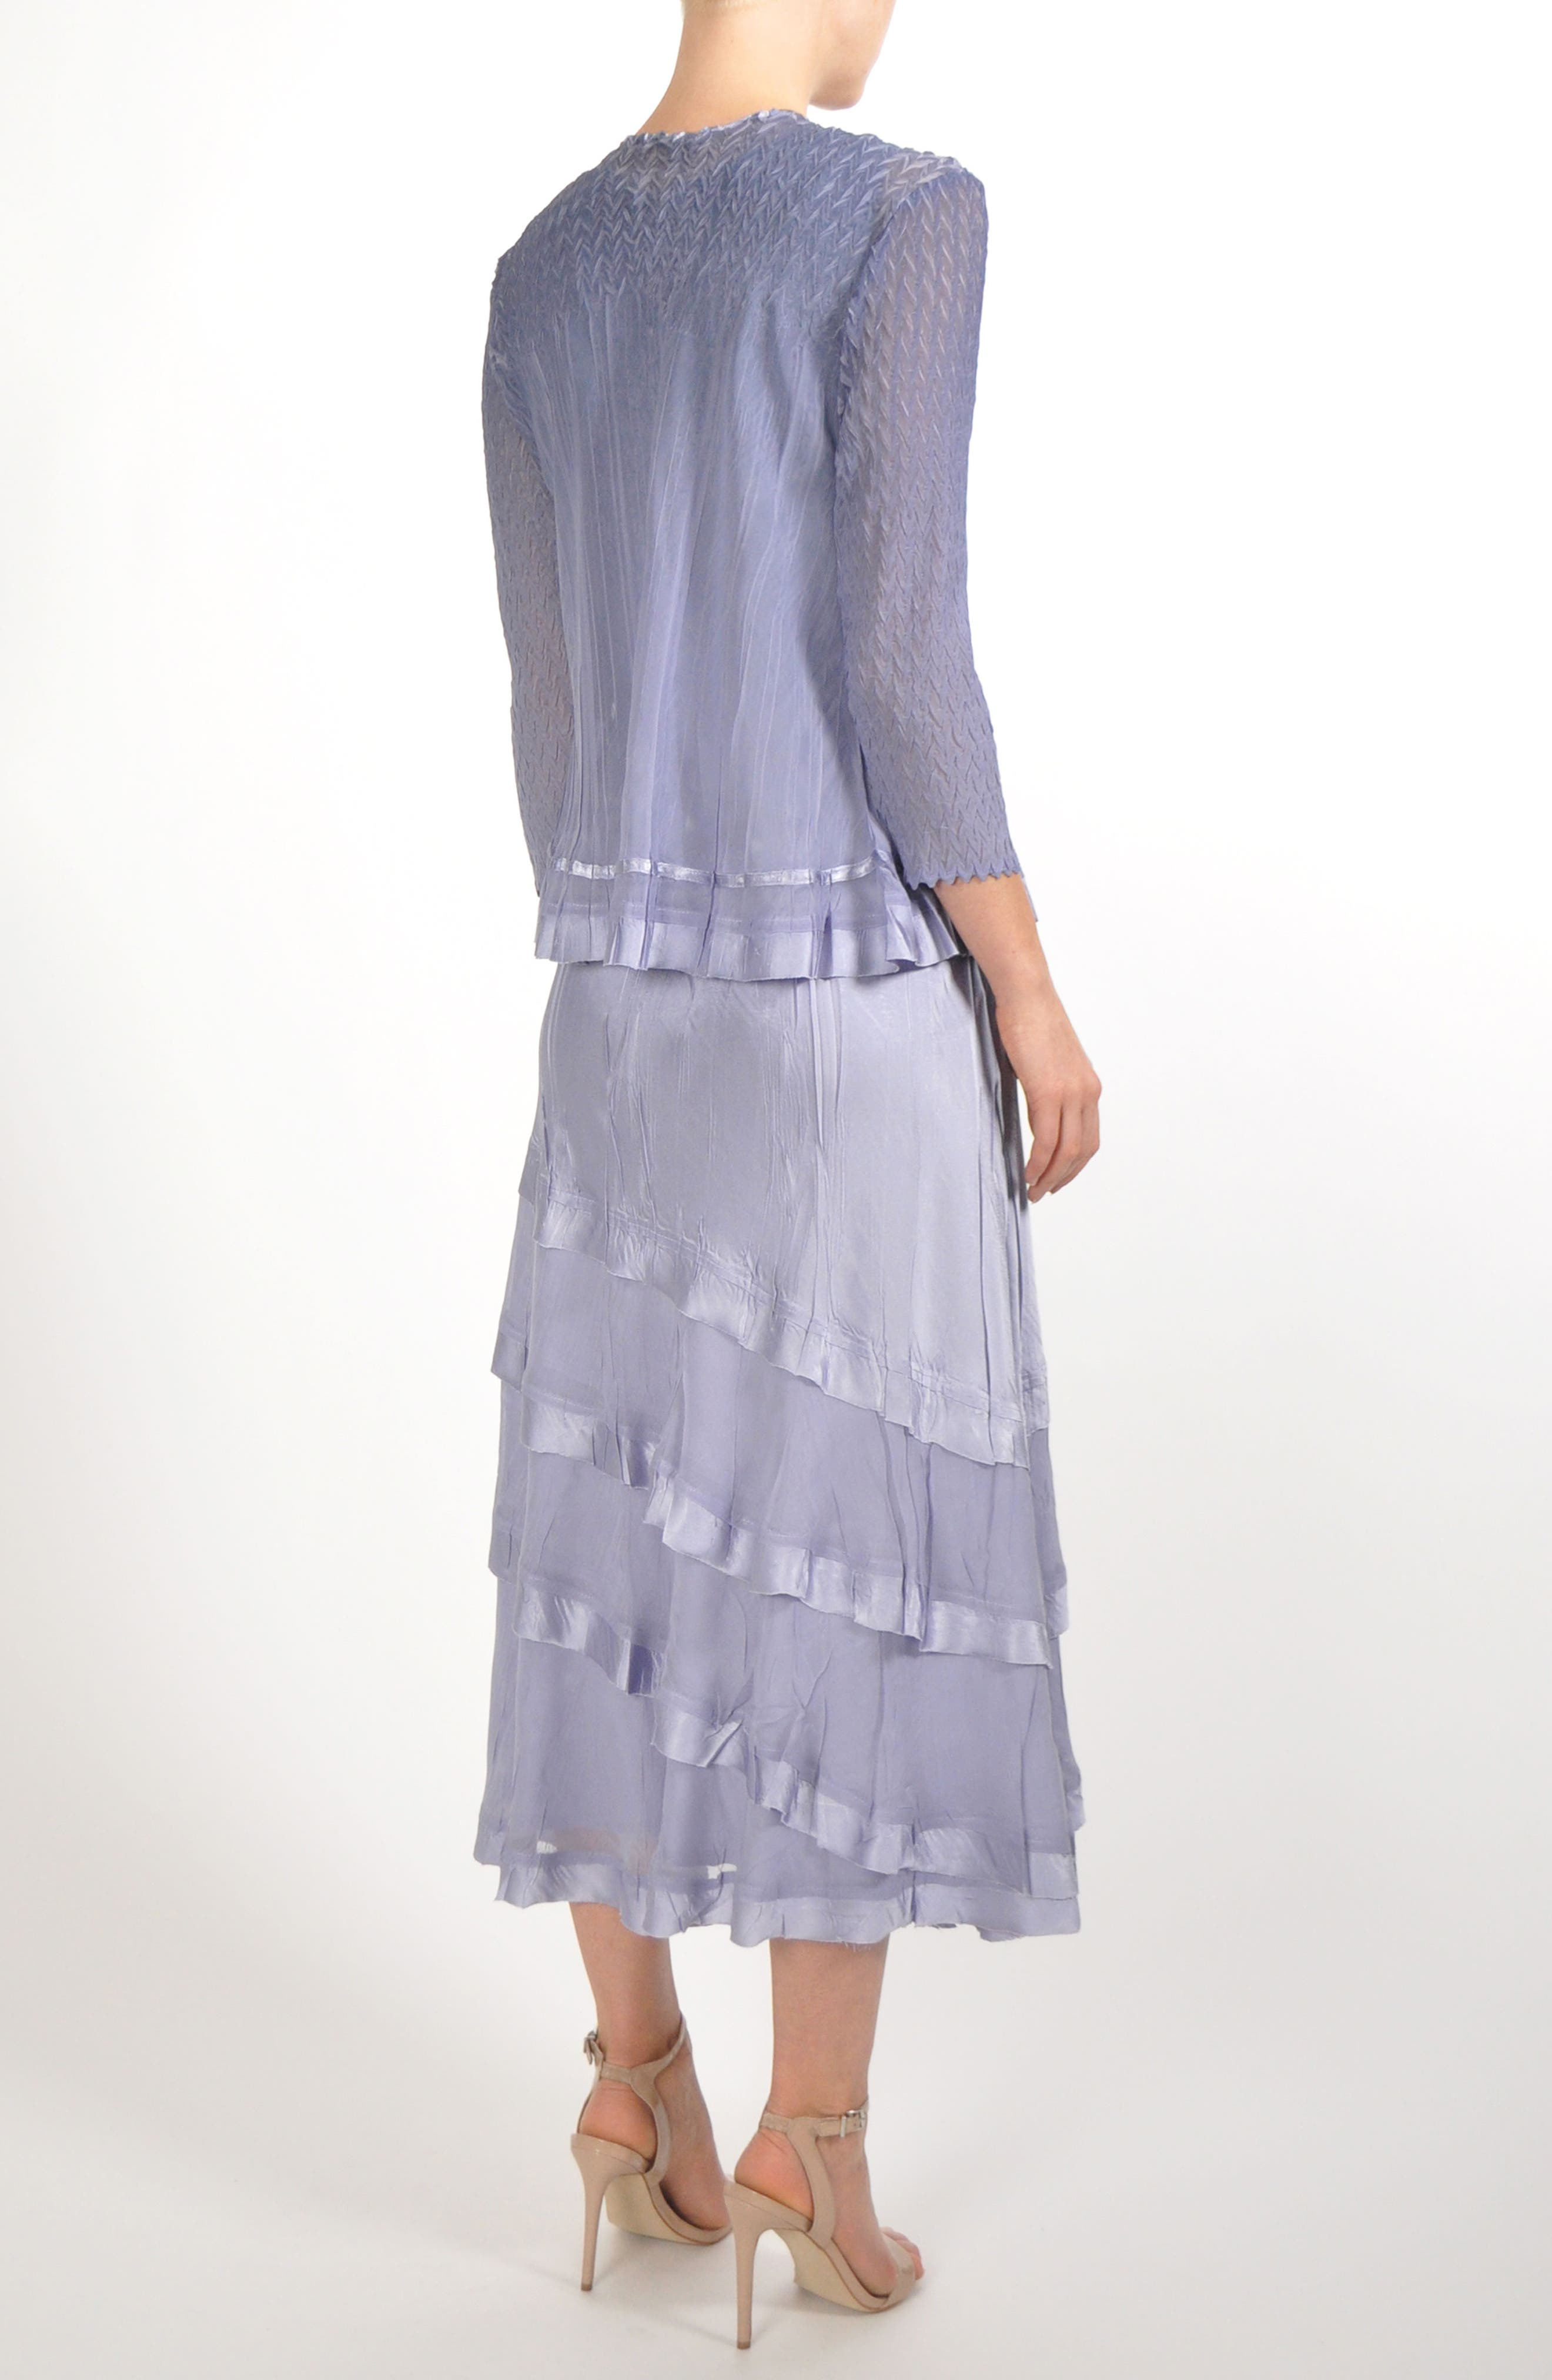 Charmeuse & Chiffon Tiered Hem Dress with Jacket,                             Alternate thumbnail 7, color,                             LAVENDER GREY BLUE OMBRE